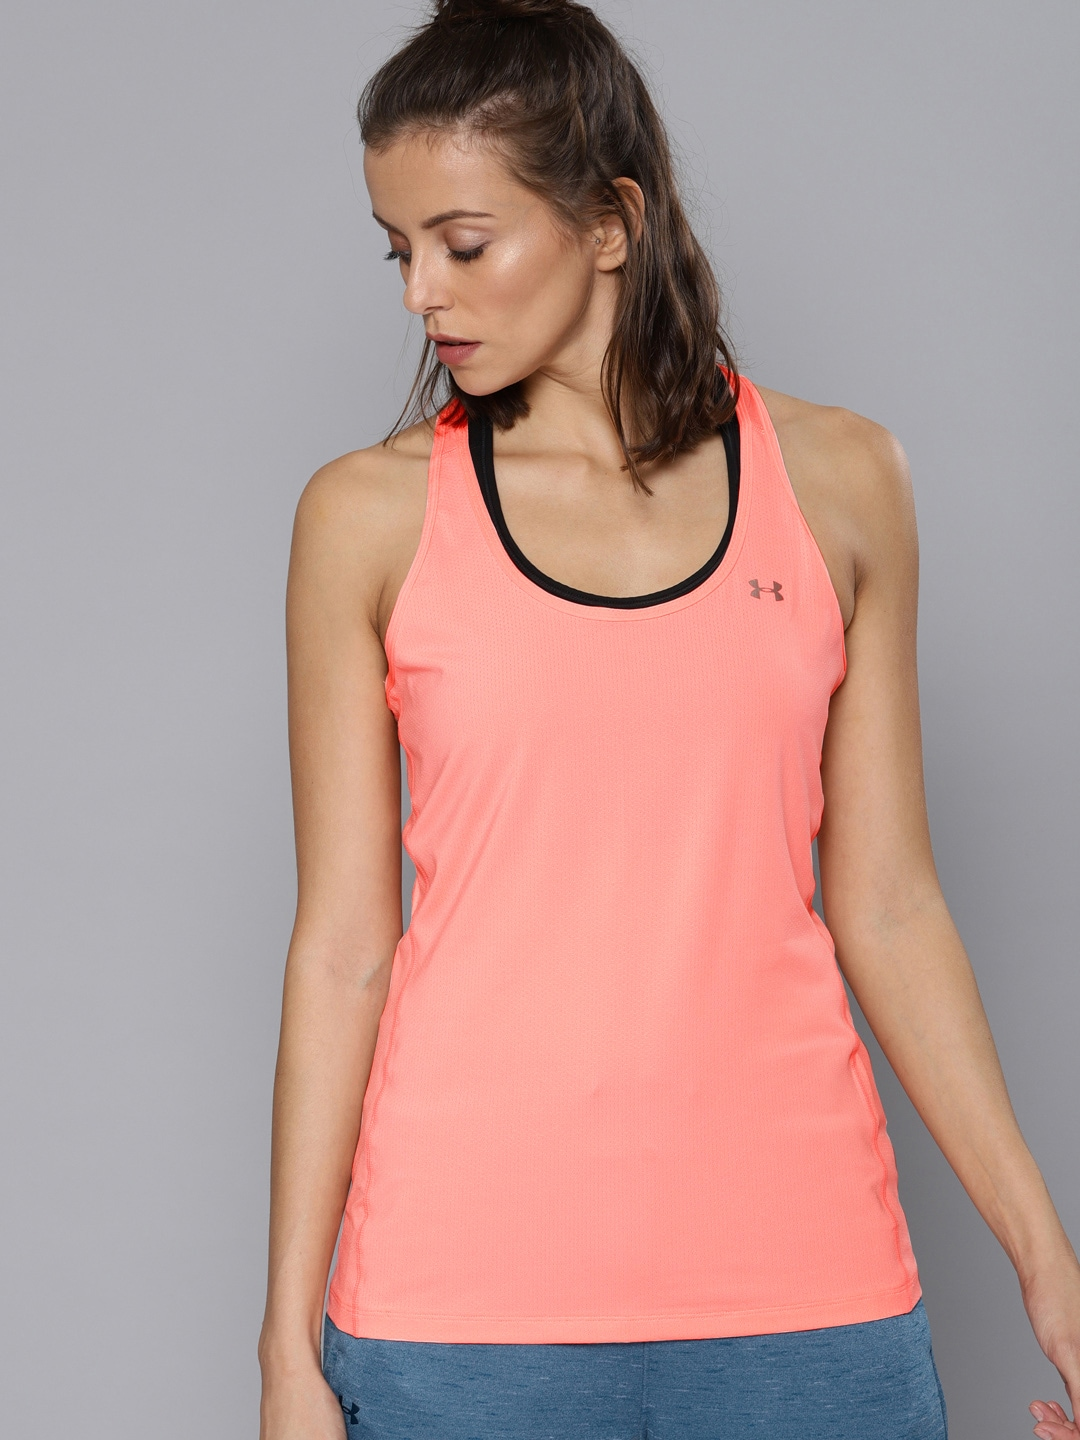 ed3f22e325e3d4 Under Armour - Buy Under Armour online in India